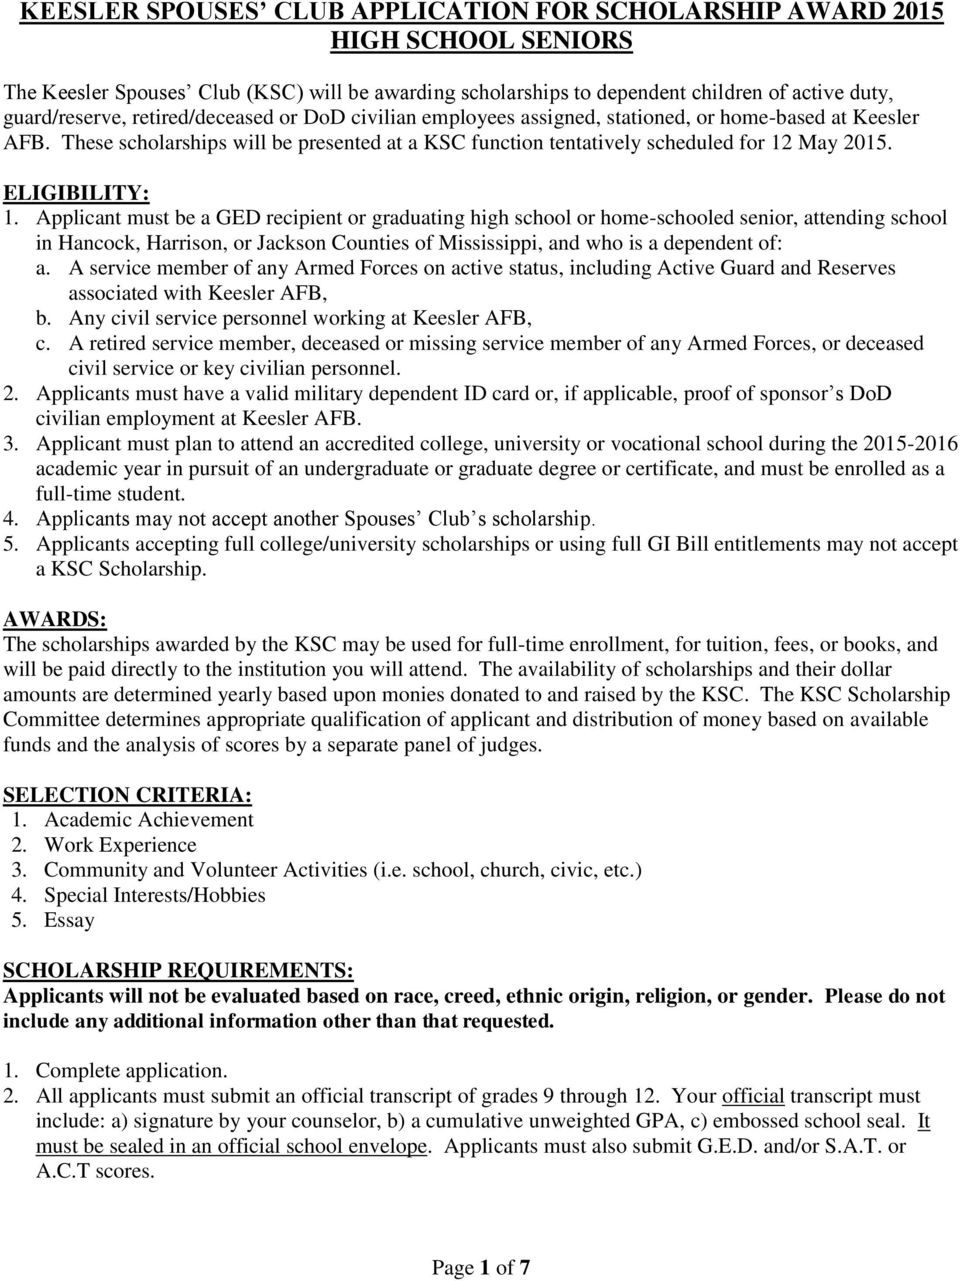 Applicant must be a GED recipient or graduating high school or home-schooled senior, attending school in Hancock, Harrison, or Jackson Counties of Mississippi, and who is a dependent of: a.